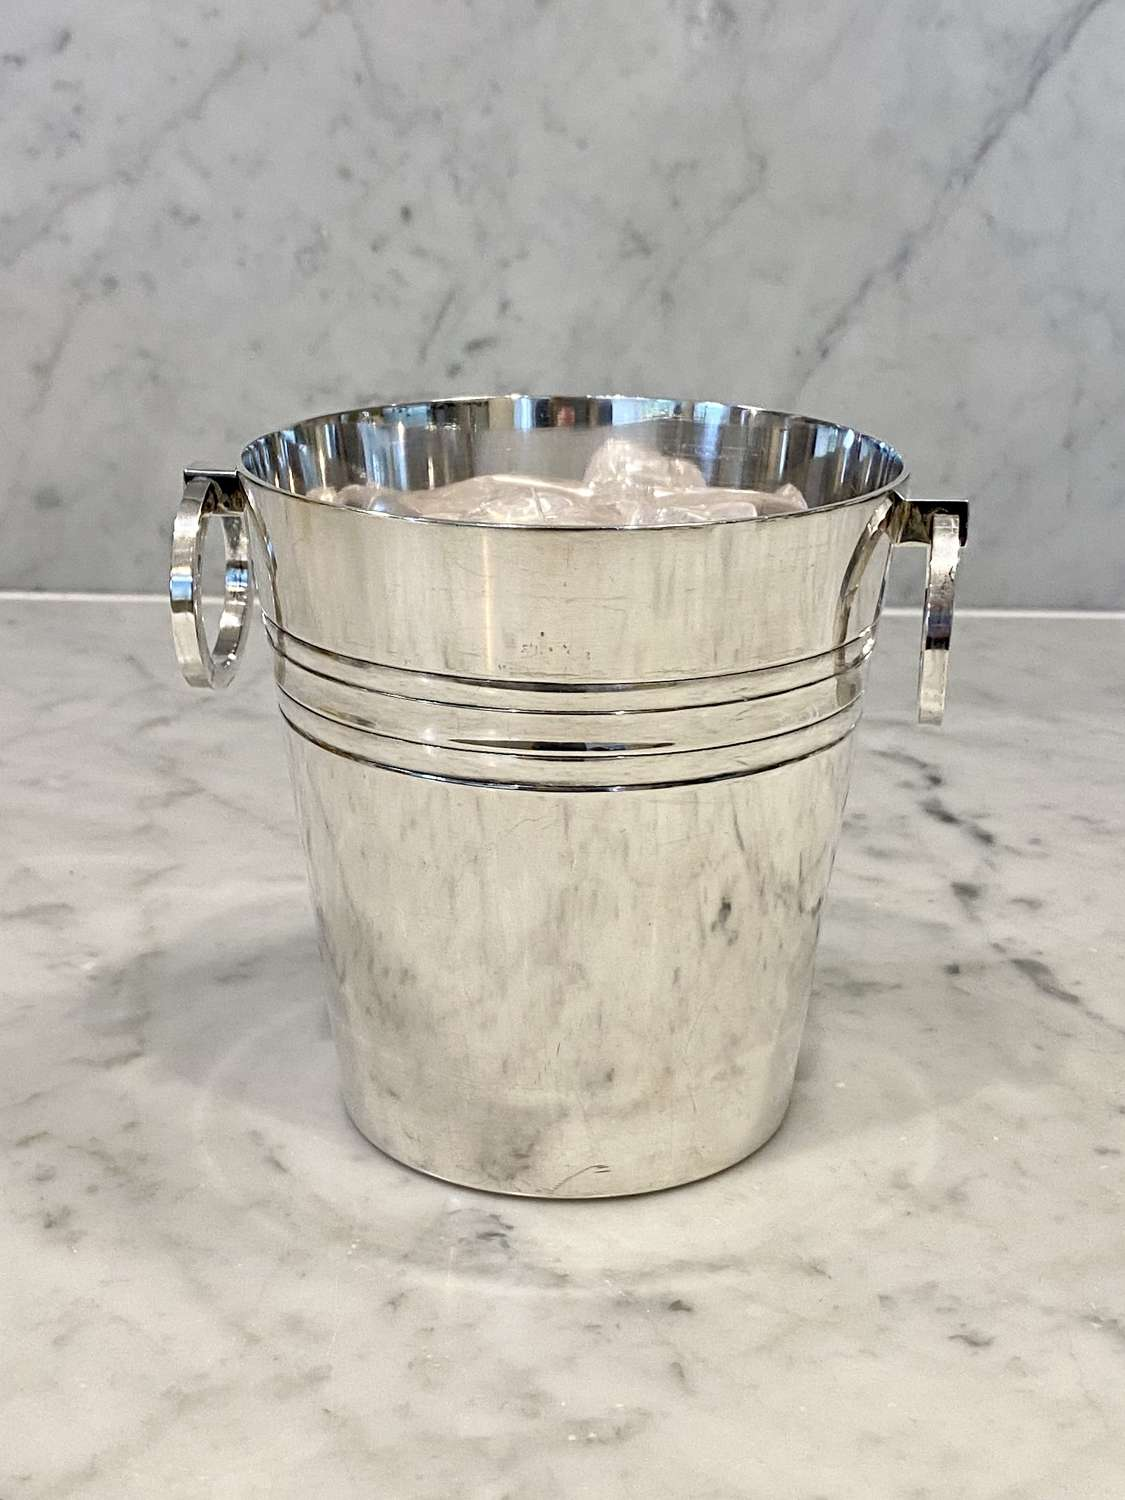 Wiskemann silver plated ring handle ice bucket